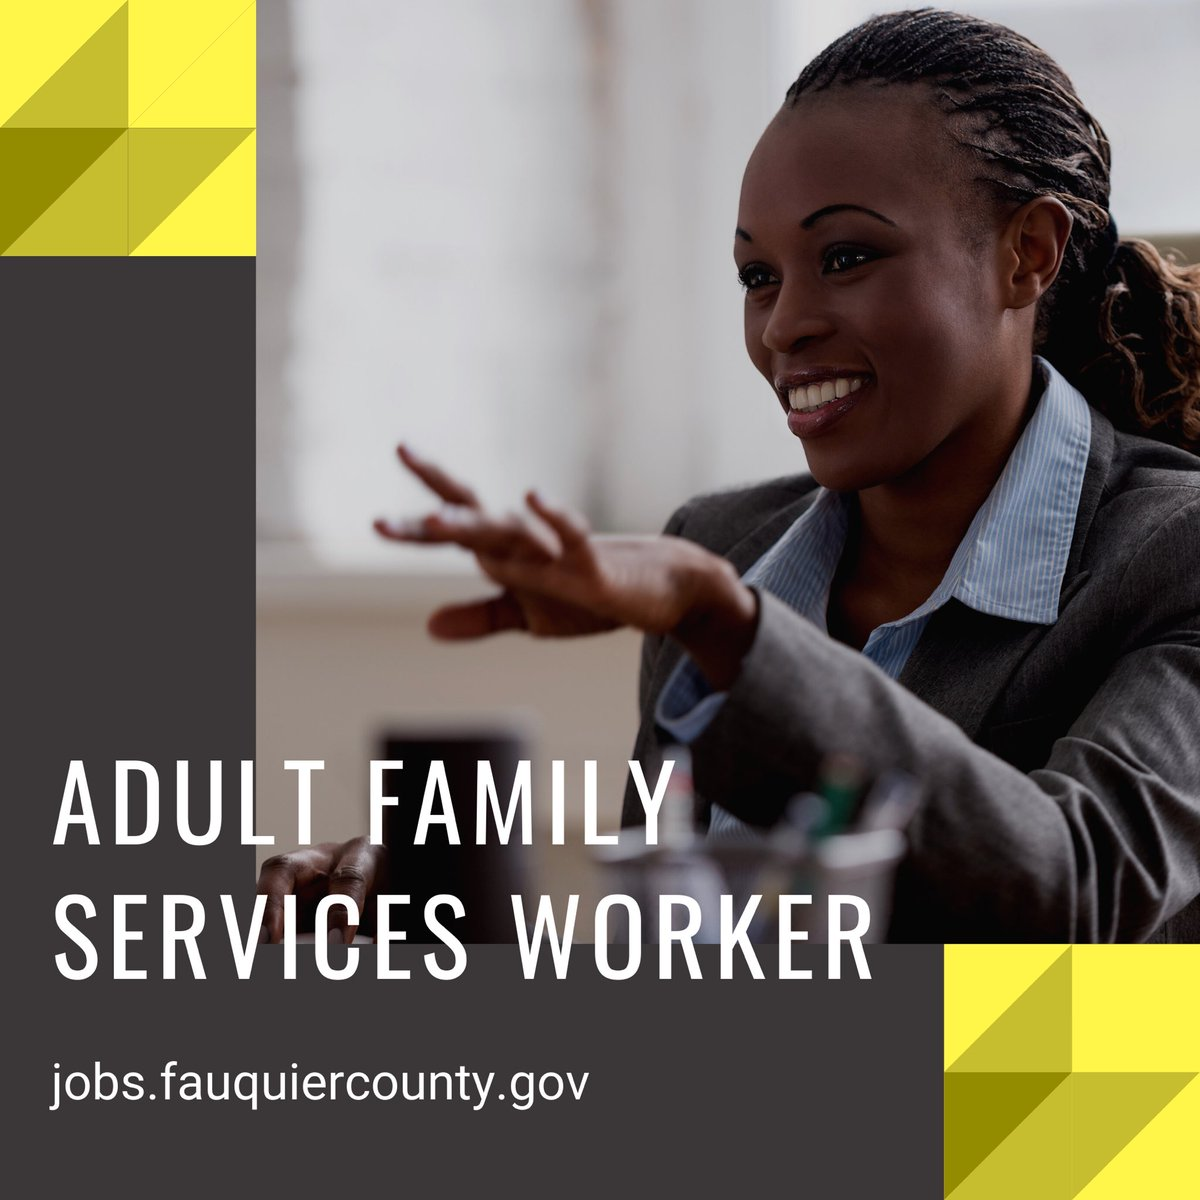 Career opportunity with Fauquier County Department of Social Services!  #work #jobs #FauquierCounty #fauquieremployment #careersingov #novahiring